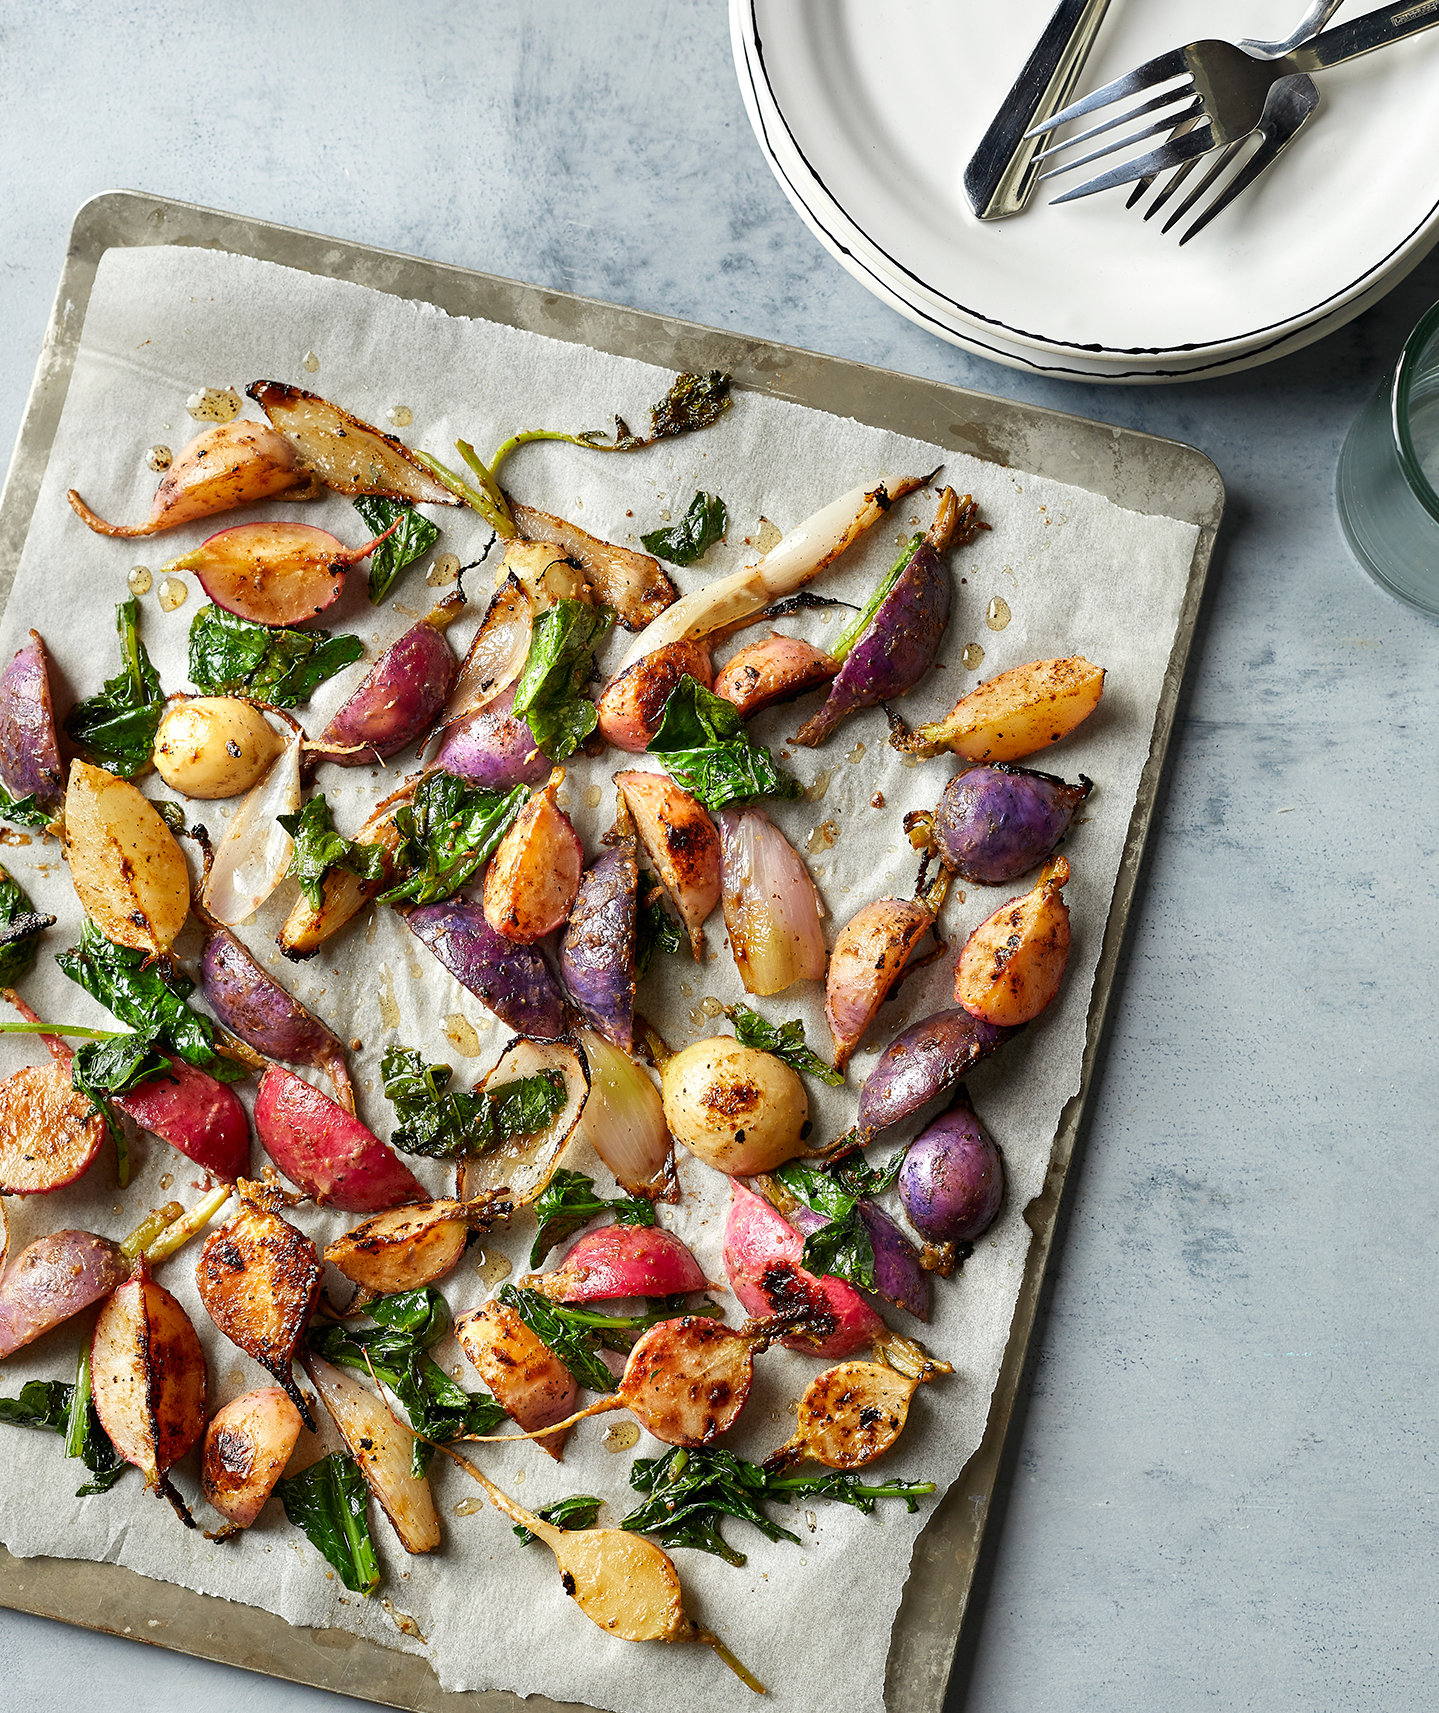 Roasted Radishes Are About to Become Your New Favorite Side Dish